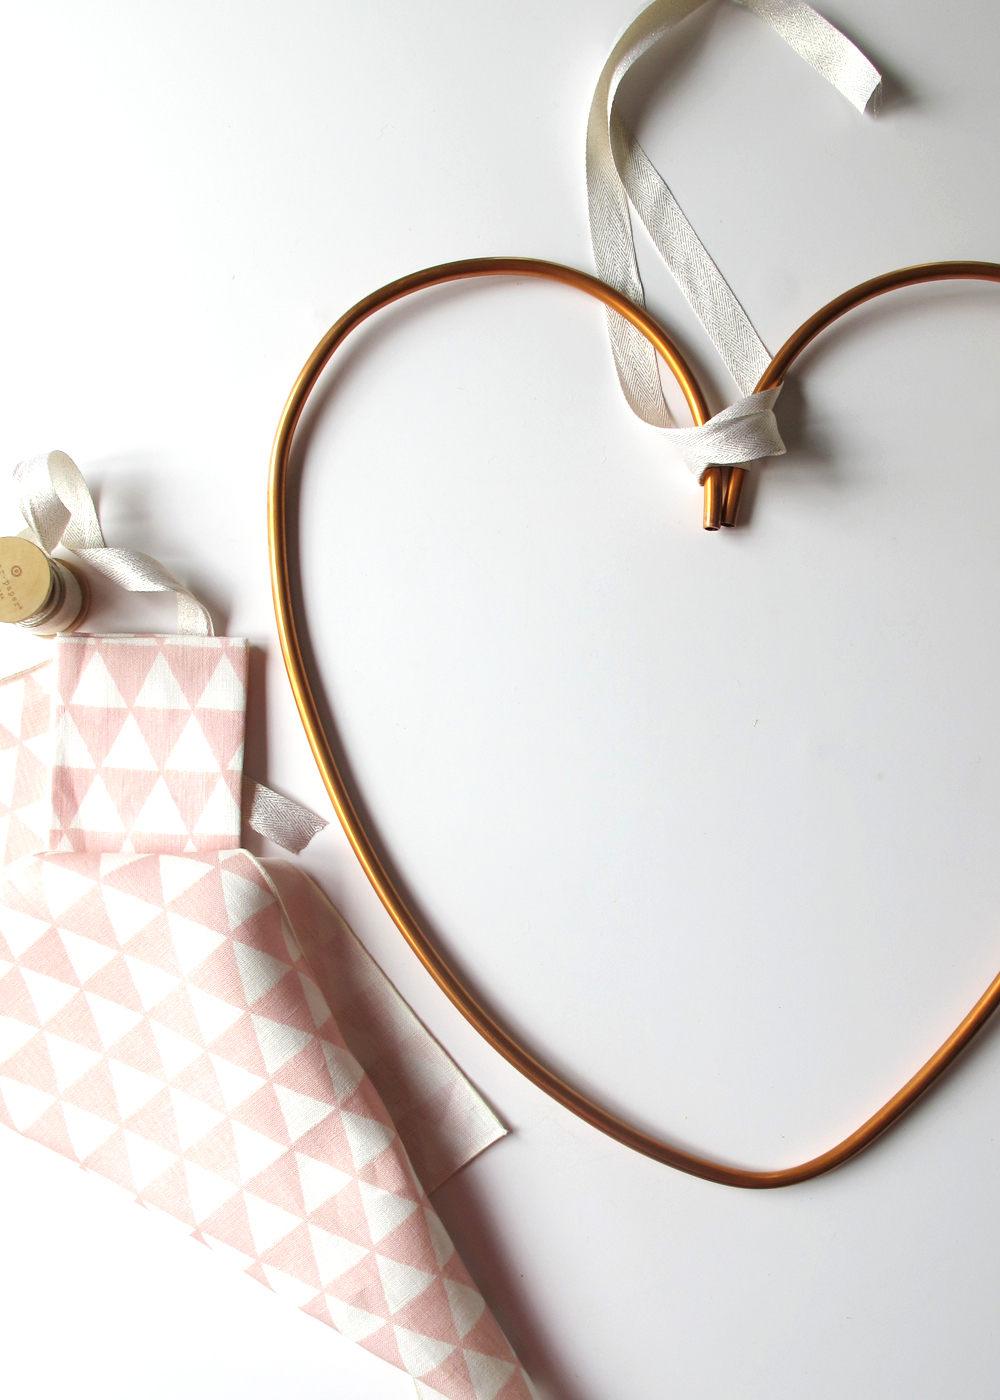 Make this easy industrial copper Valentine's wreath for under $15! See the full tutorial at Tag&Tibby